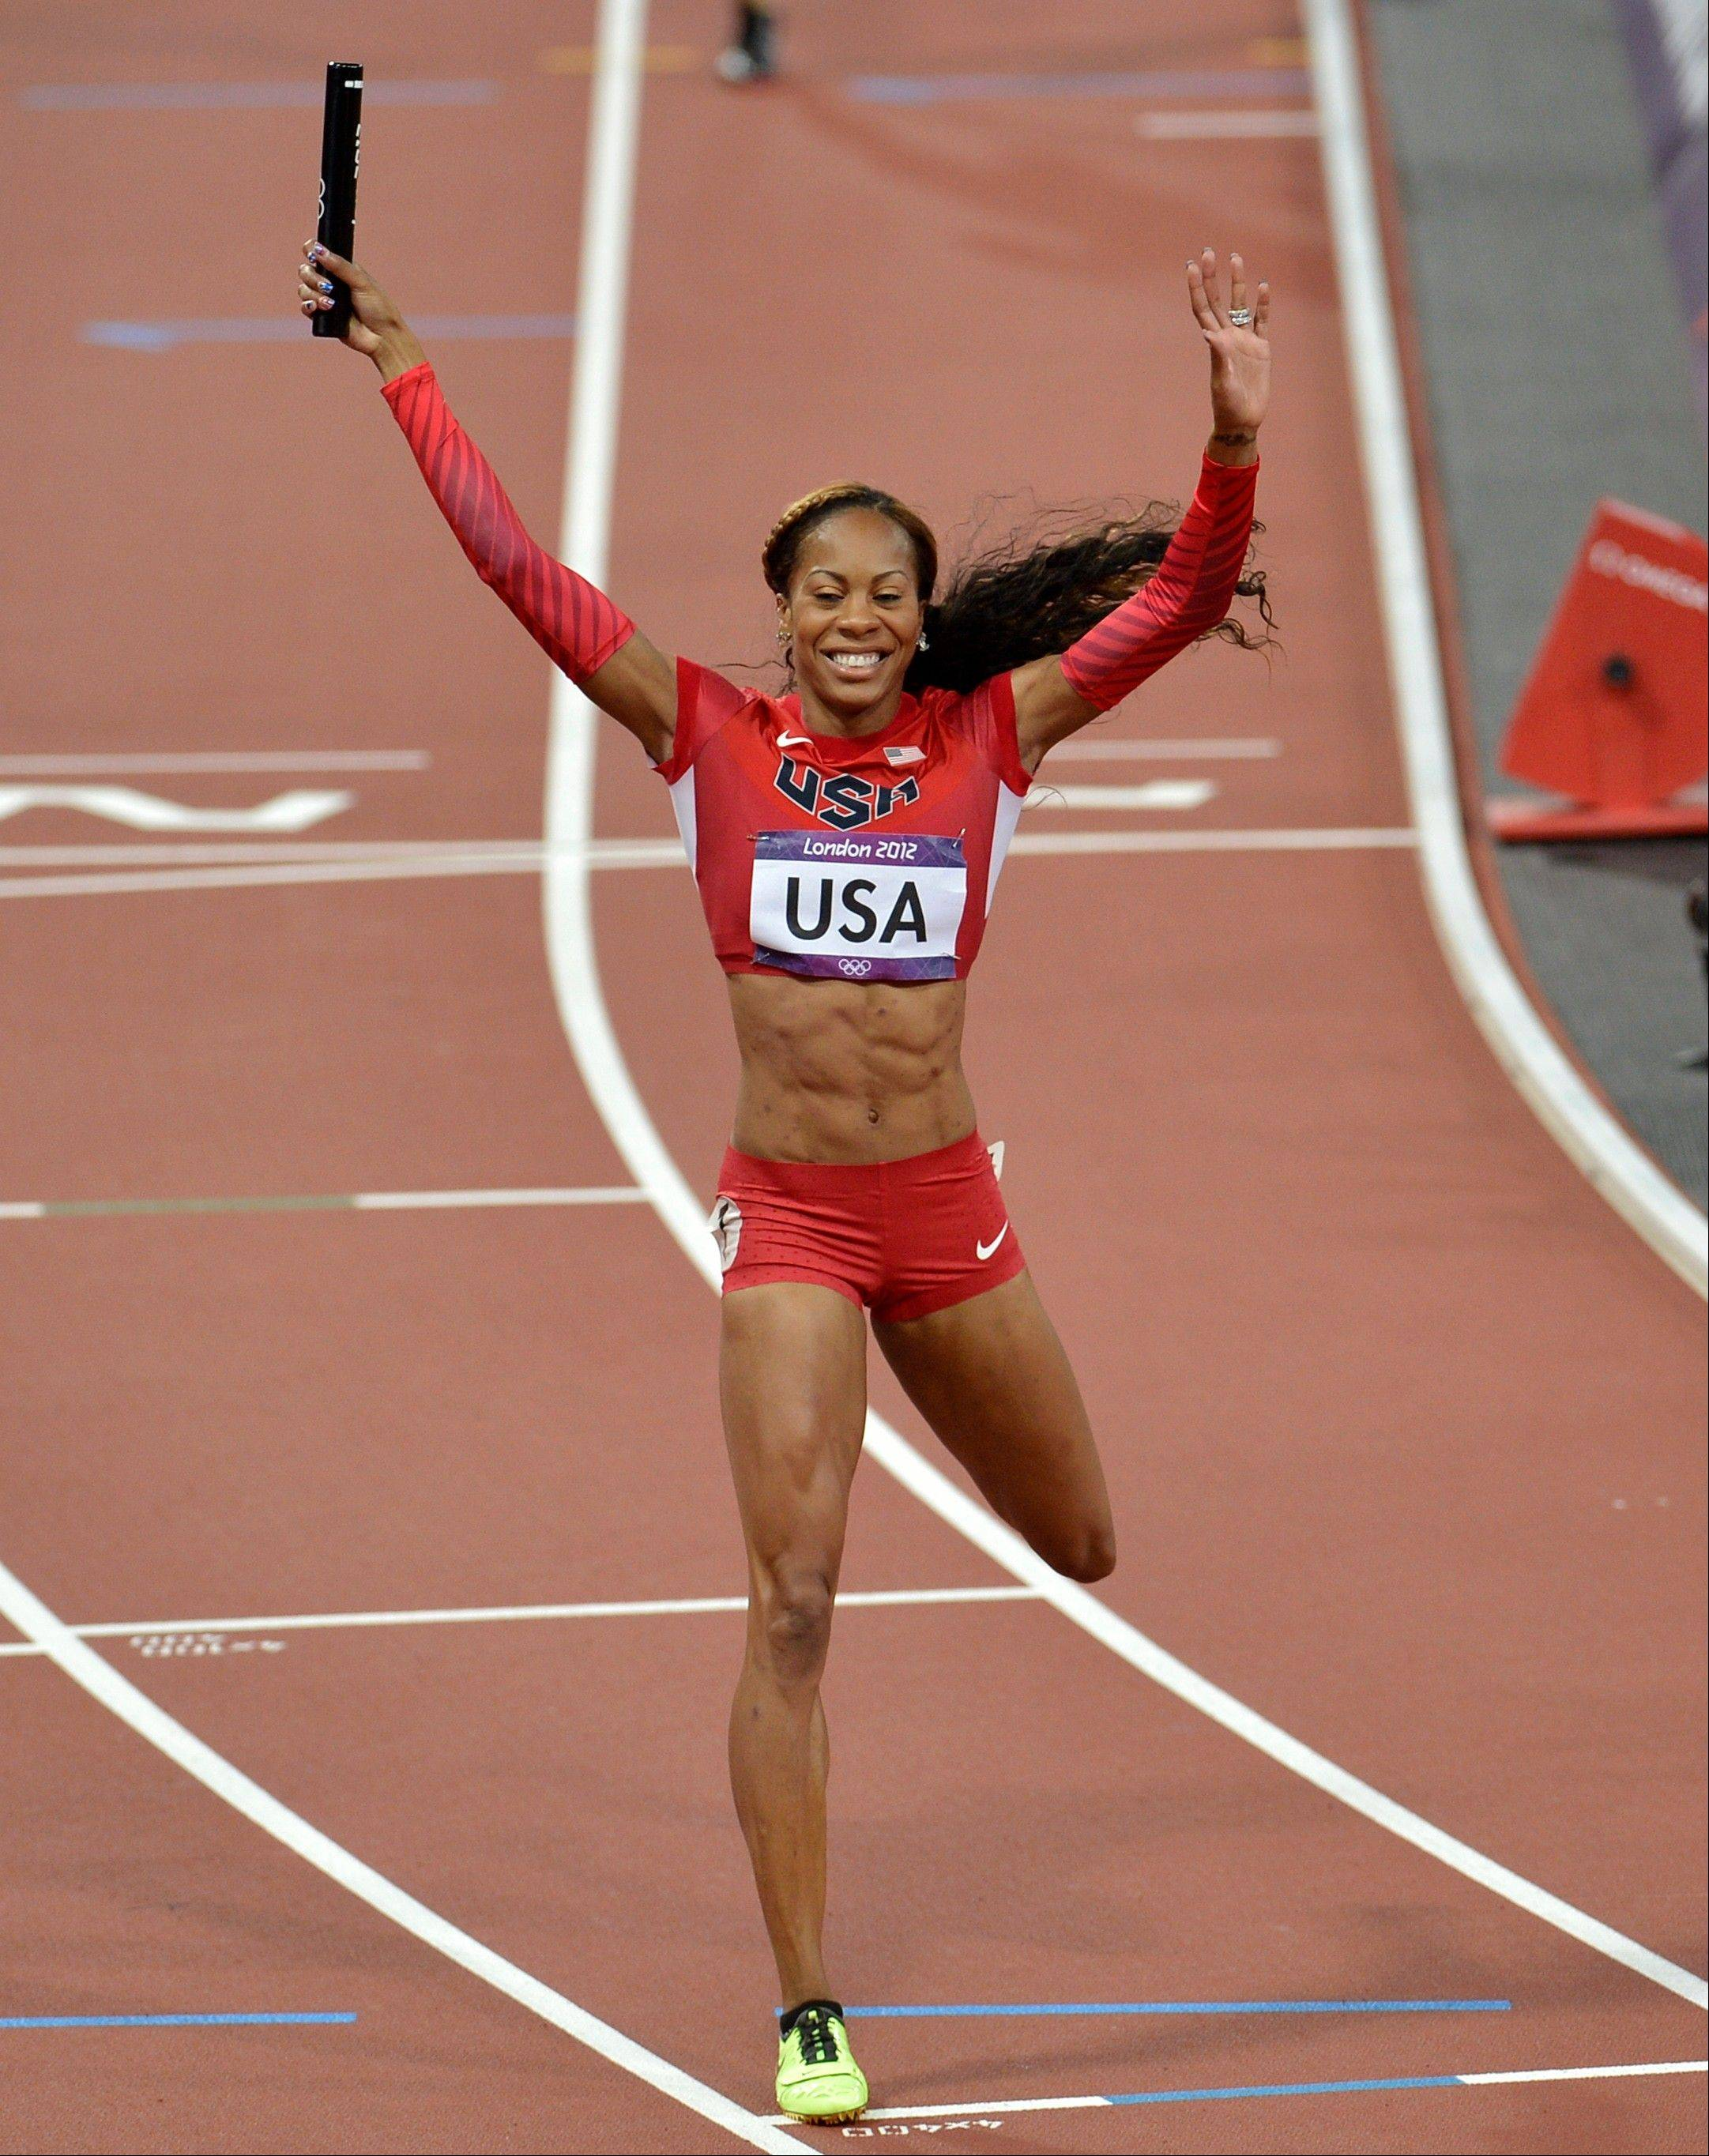 United States' Sanya Richards-Ross celebrates asfter crossing the finish line to win the women's 4 x 400-meter relay final during the athletics in the Olympic Stadium at the 2012 Summer Olympics, London, Saturday, Aug. 11, 2012.